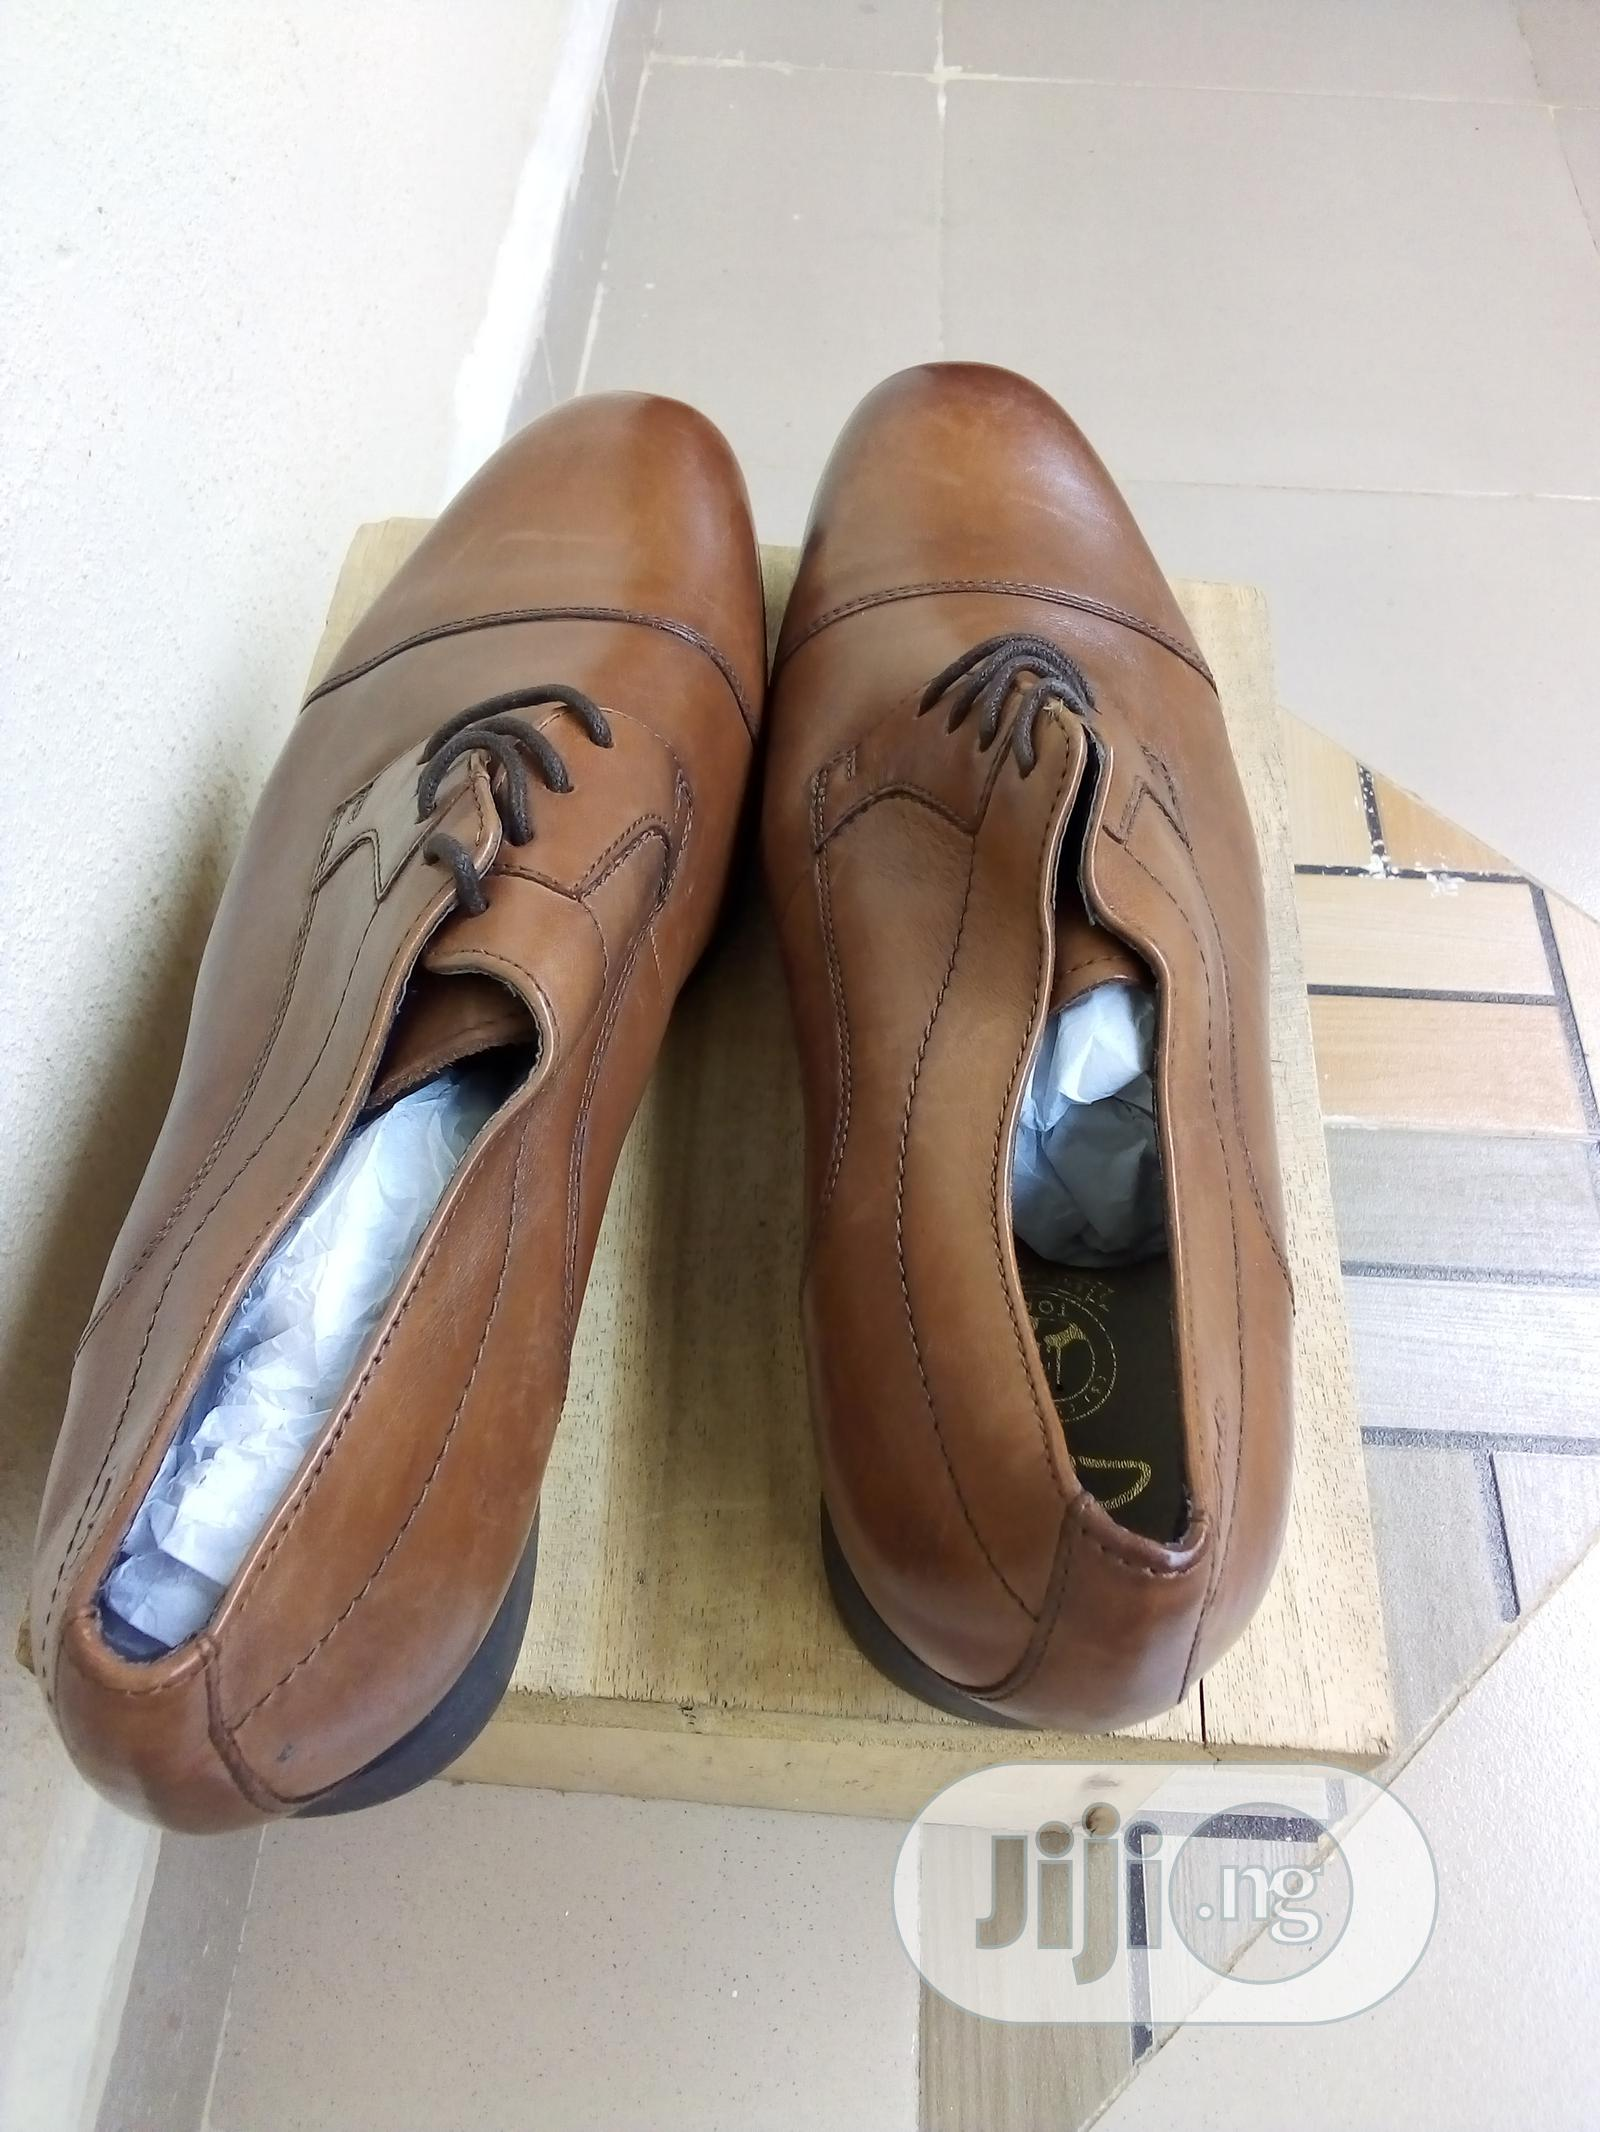 compromesso insidie fine settimana  Archive: Uk Clarks Men's Shoe New in Ibadan - Shoes, Racheal Anjorin |  Jiji.ng for sale in Ibadan | Buy Shoes from Racheal Anjorin on Jiji.ng